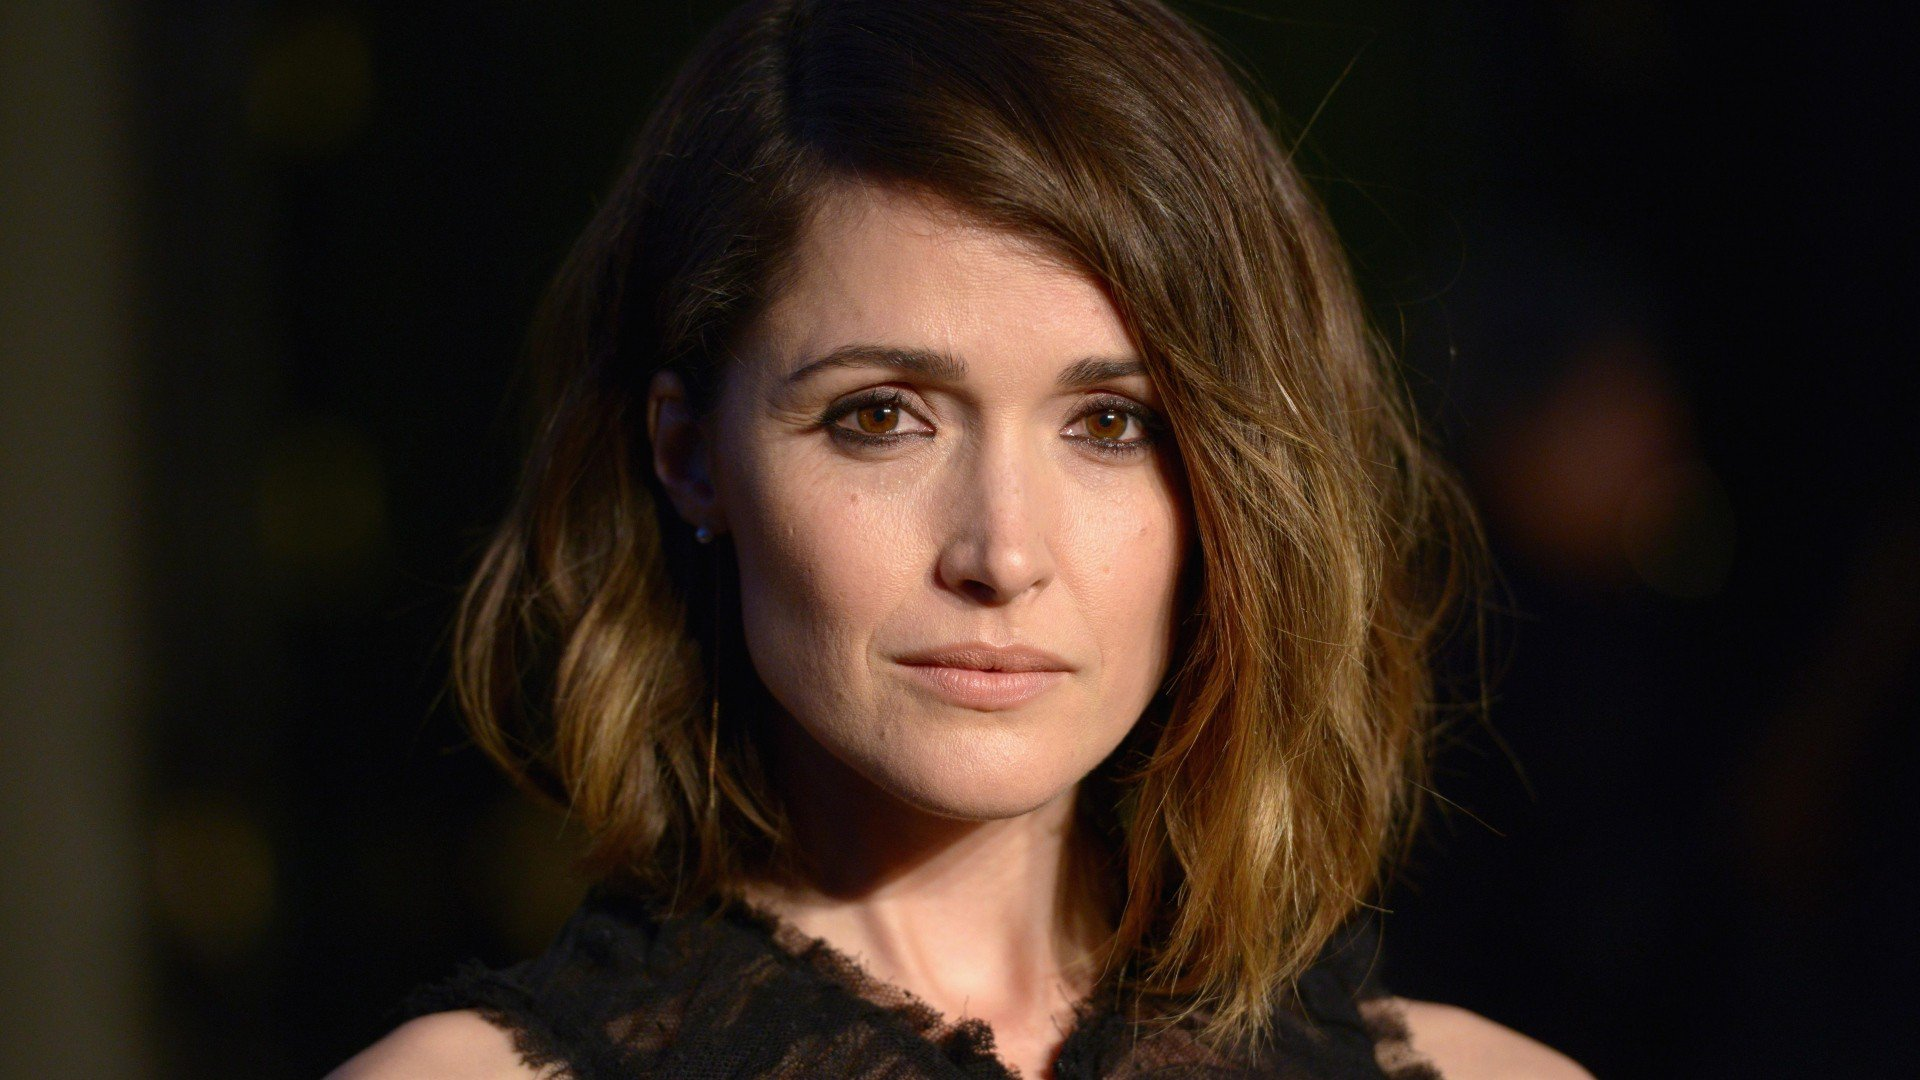 Cute Apple Logo Wallpaper Rose Byrne Hd Celebrities 4k Wallpapers Images